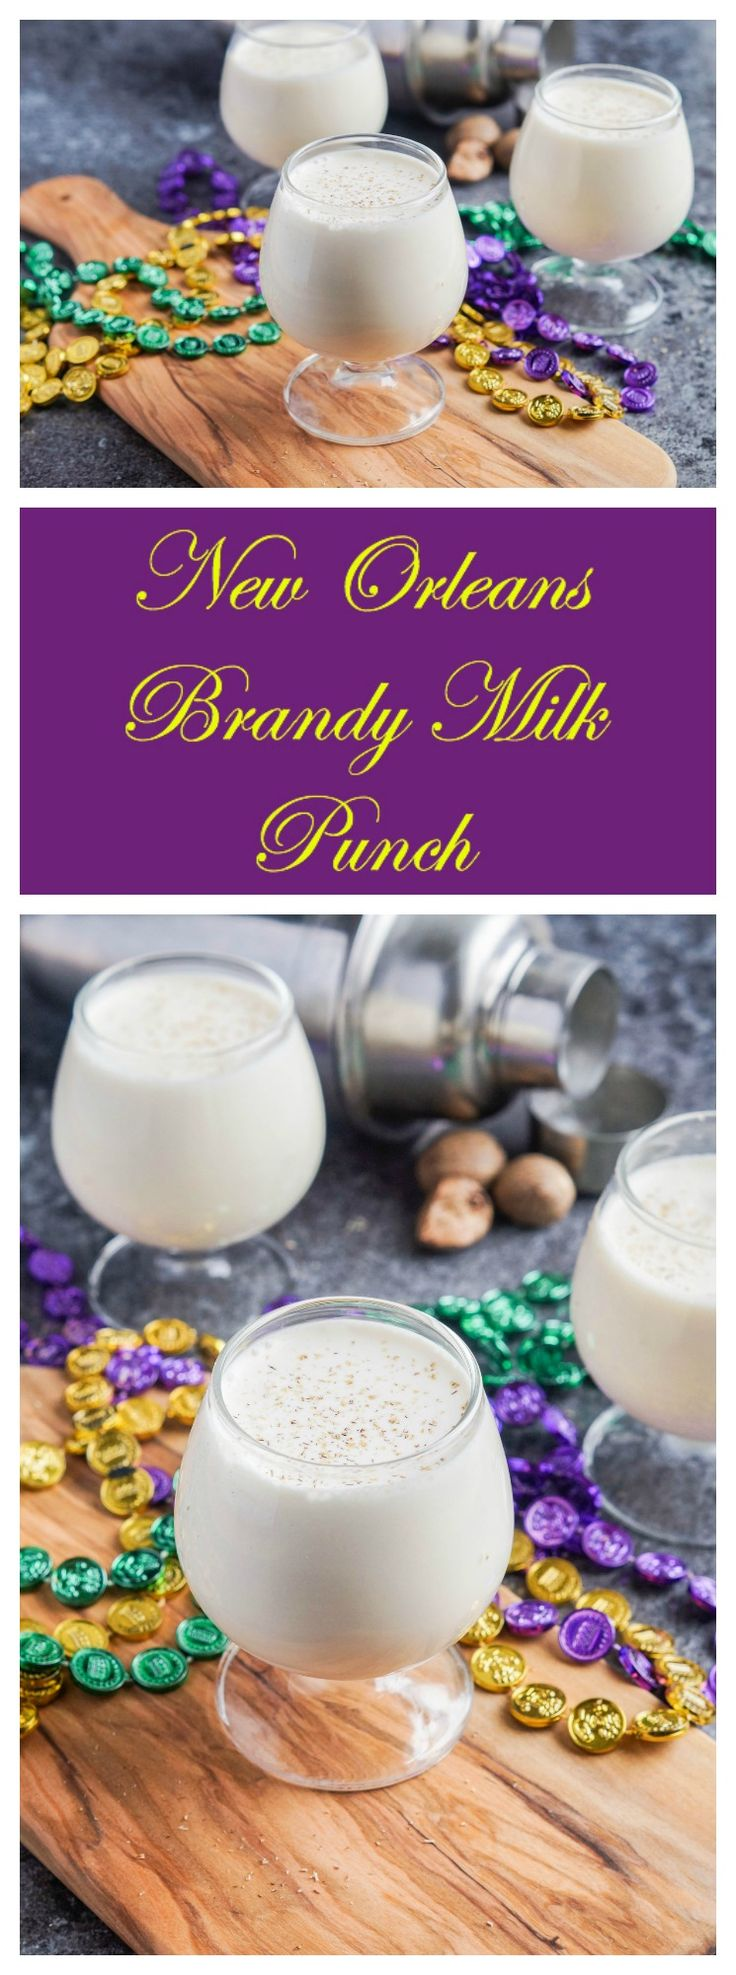 Recipe for New Orleans Brandy Milk Punch- This Mardi Gras favorite brings together milk and cream with brandy, vanilla, and powdered sugar for a smooth and creamy cocktail.  #SundaySupper #NewOrleans #recipe #MardiGras #milk #milkpunch #brandy #cocktail #drink #beverage